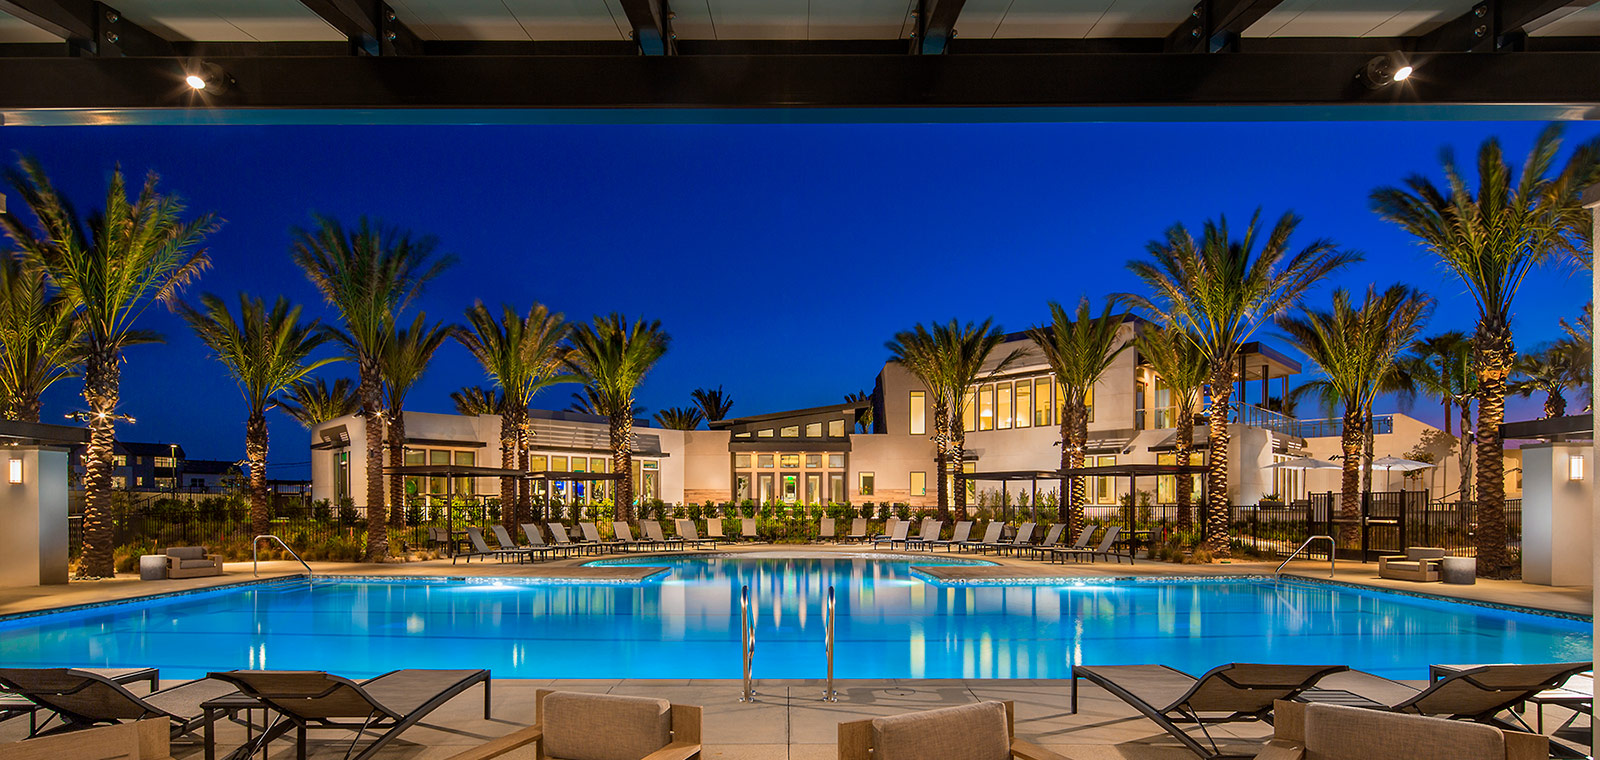 Pool at dusk | The Resort | New Homes in Rancho Cucamonga, CA